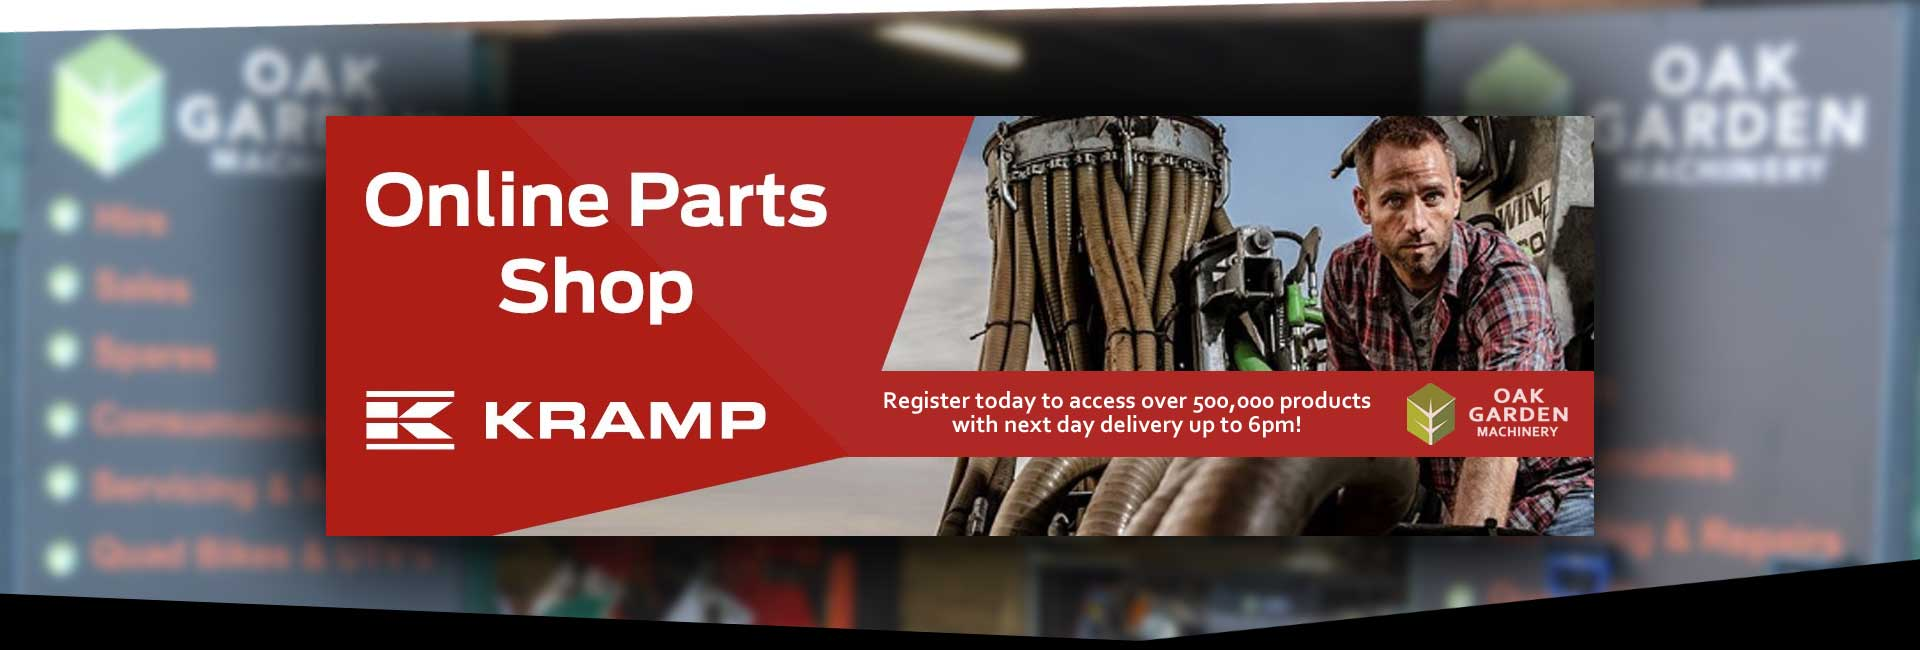 Kramp Online Parts